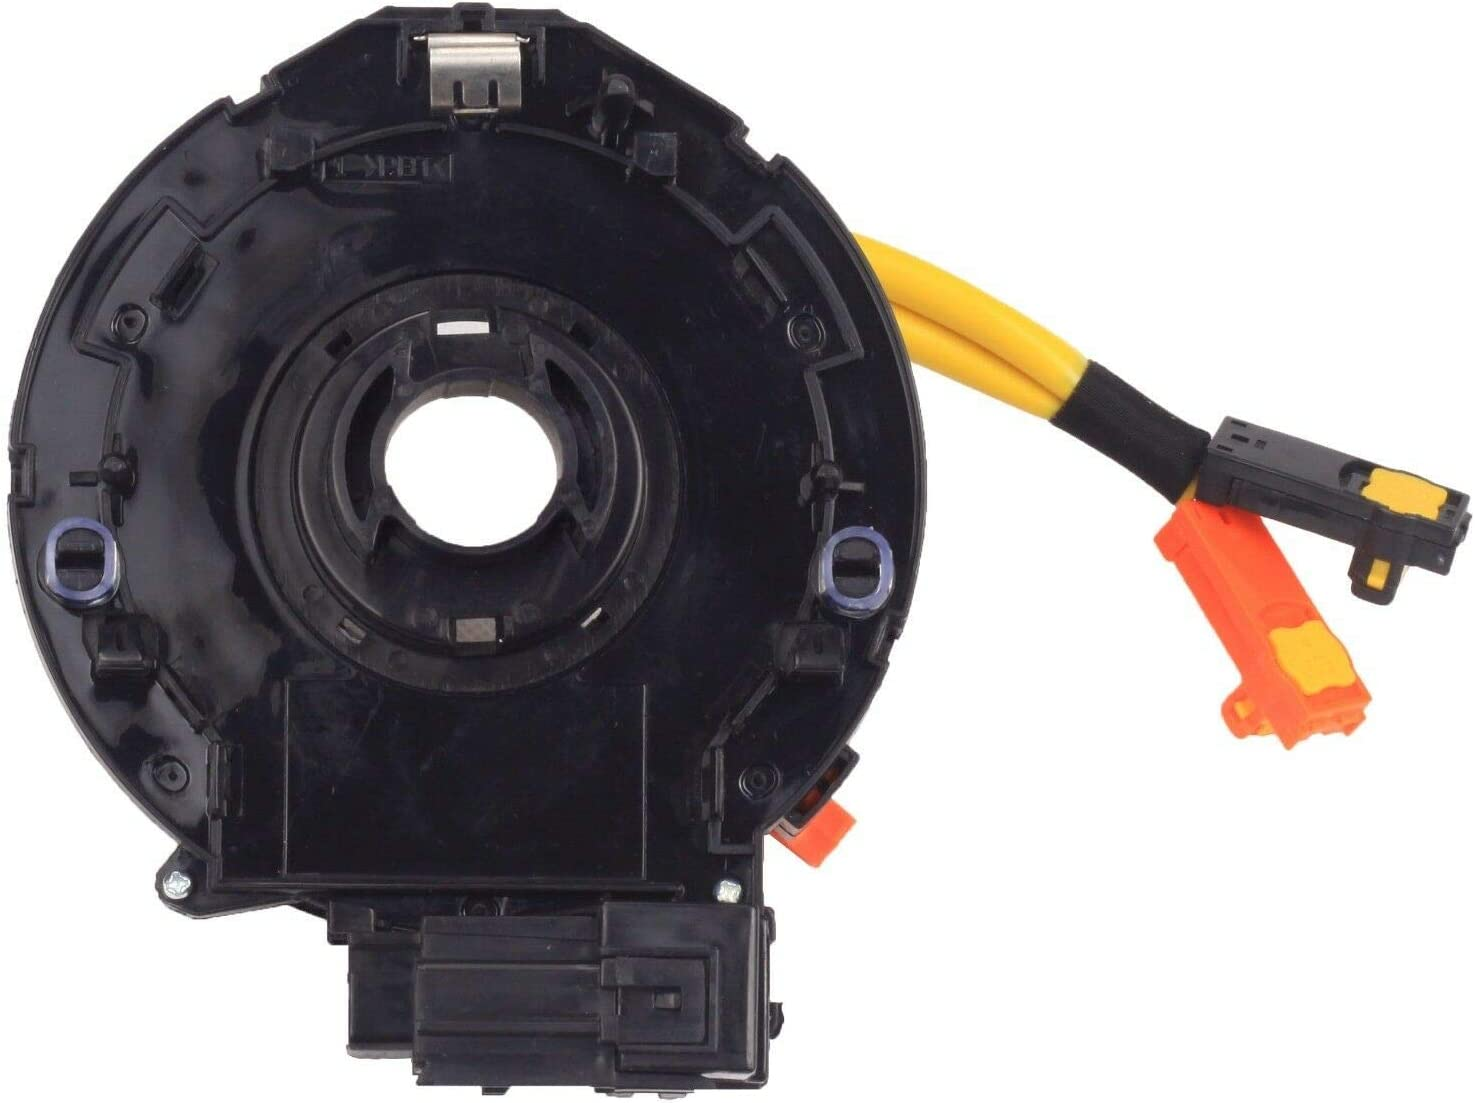 Vicue Control Combination Switch for Toyota Camry Scion TC XA XB 84306-06030